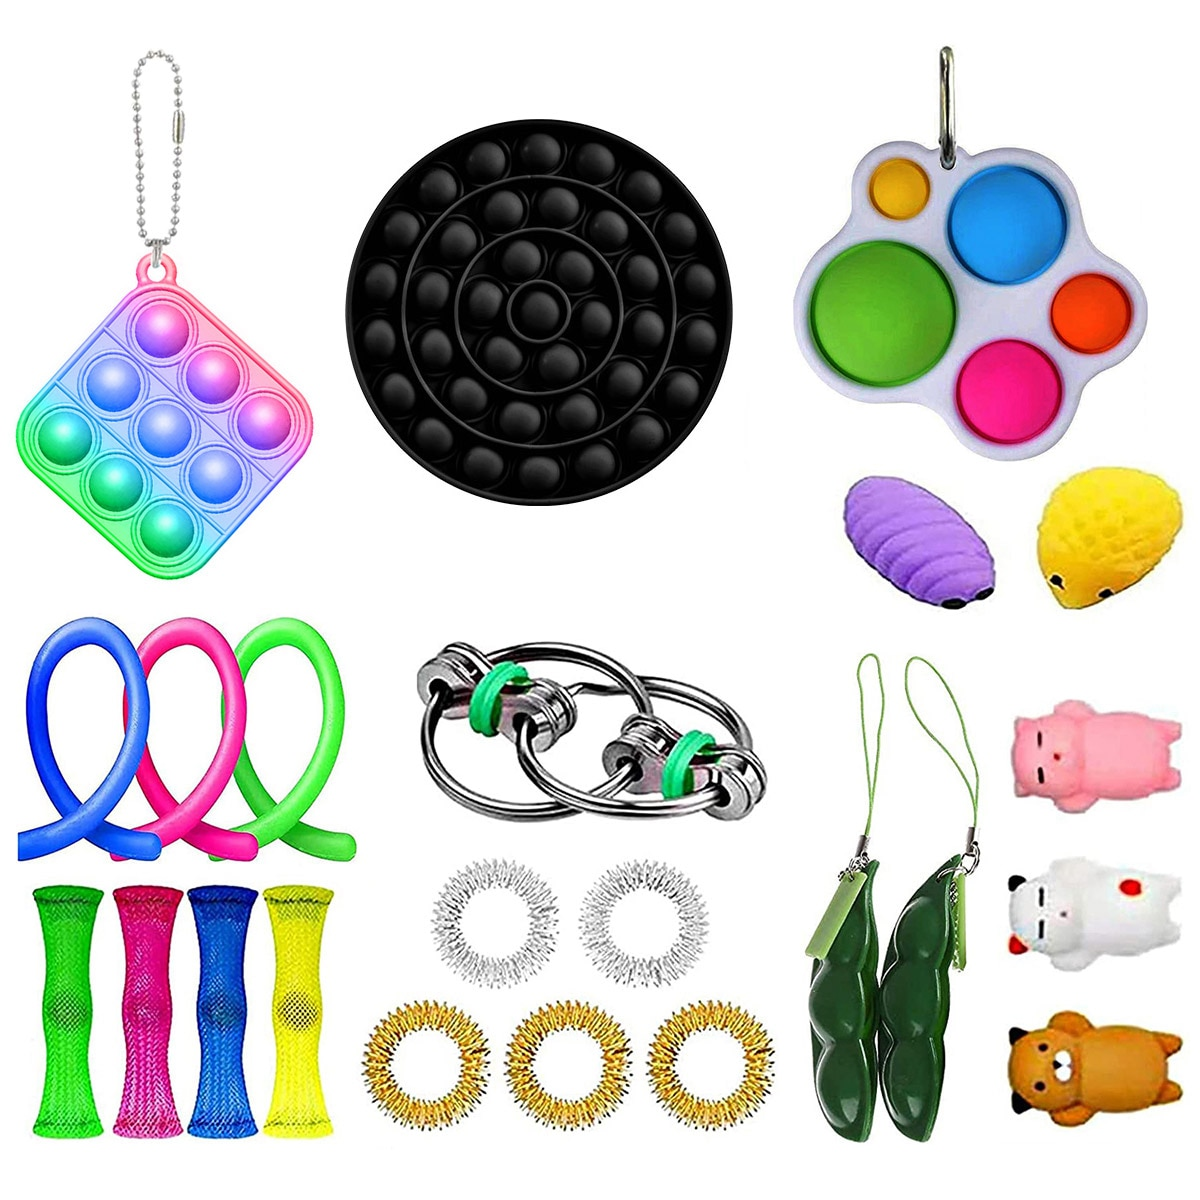 23 Pack Sensory Fidget Toys Set Stress Relief Sensory Toy Set Antistress Relief Autism Anxiety Anti Stress Bubble Toys For Kids enlarge